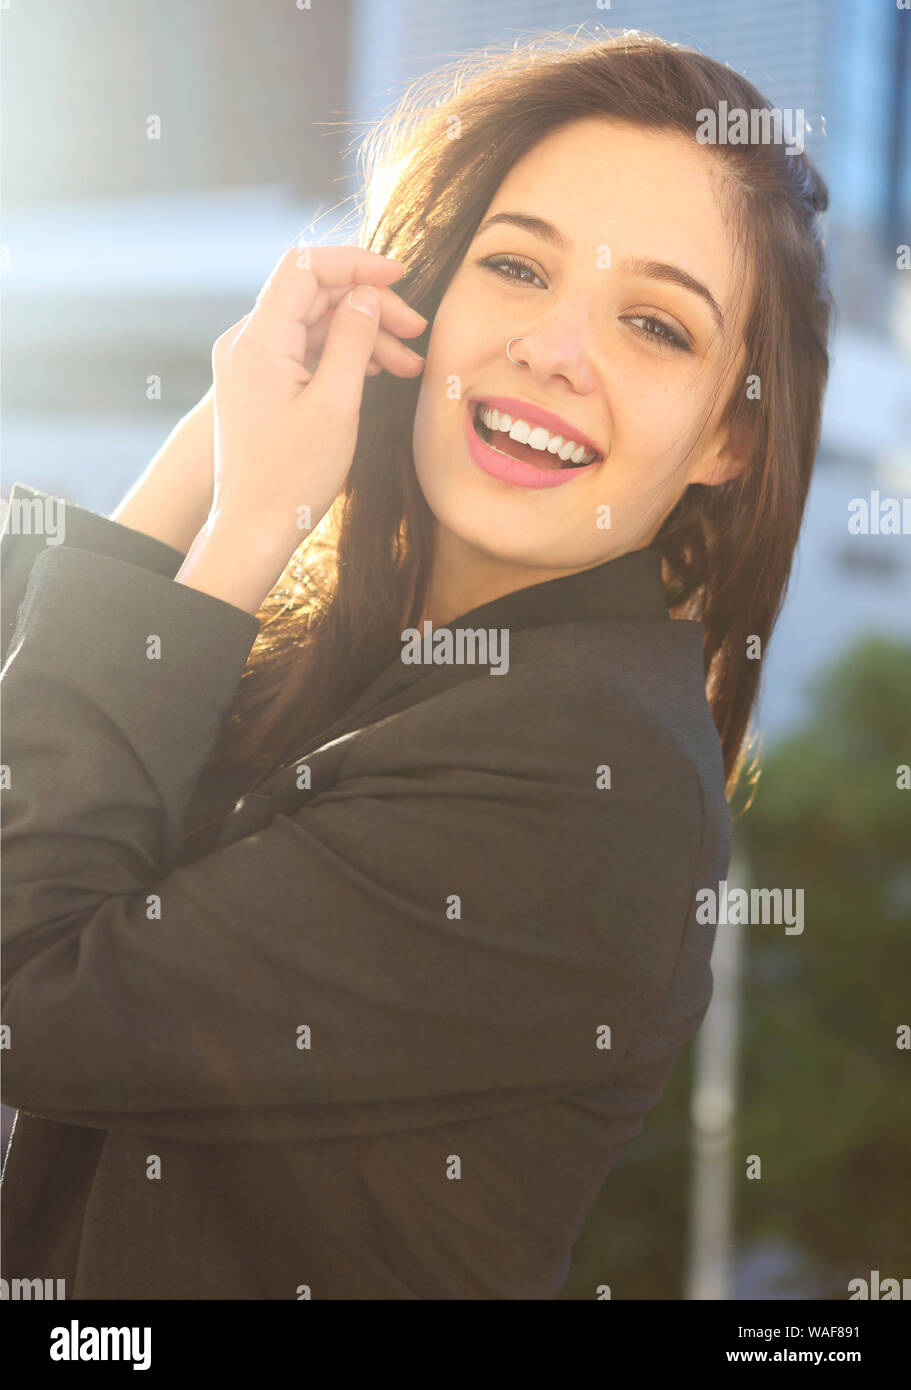 Young woman in jacket standing on balcony with city background at sunset. Sexy attractive woman with fashion styling Stock Photo